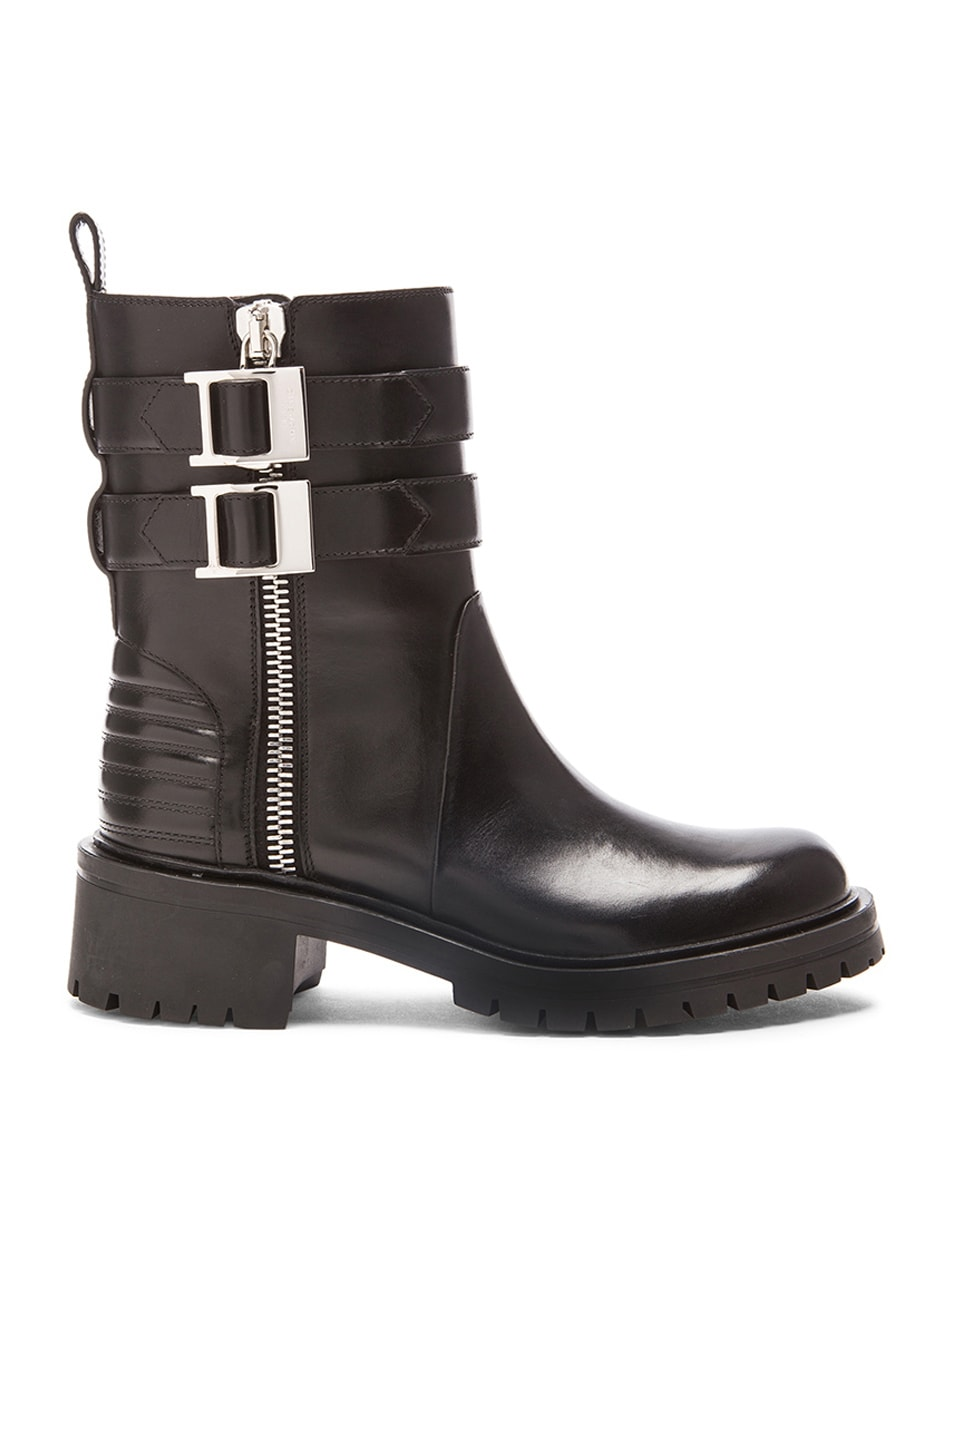 Image 1 of GIVENCHY Leather Biker Boots in Black